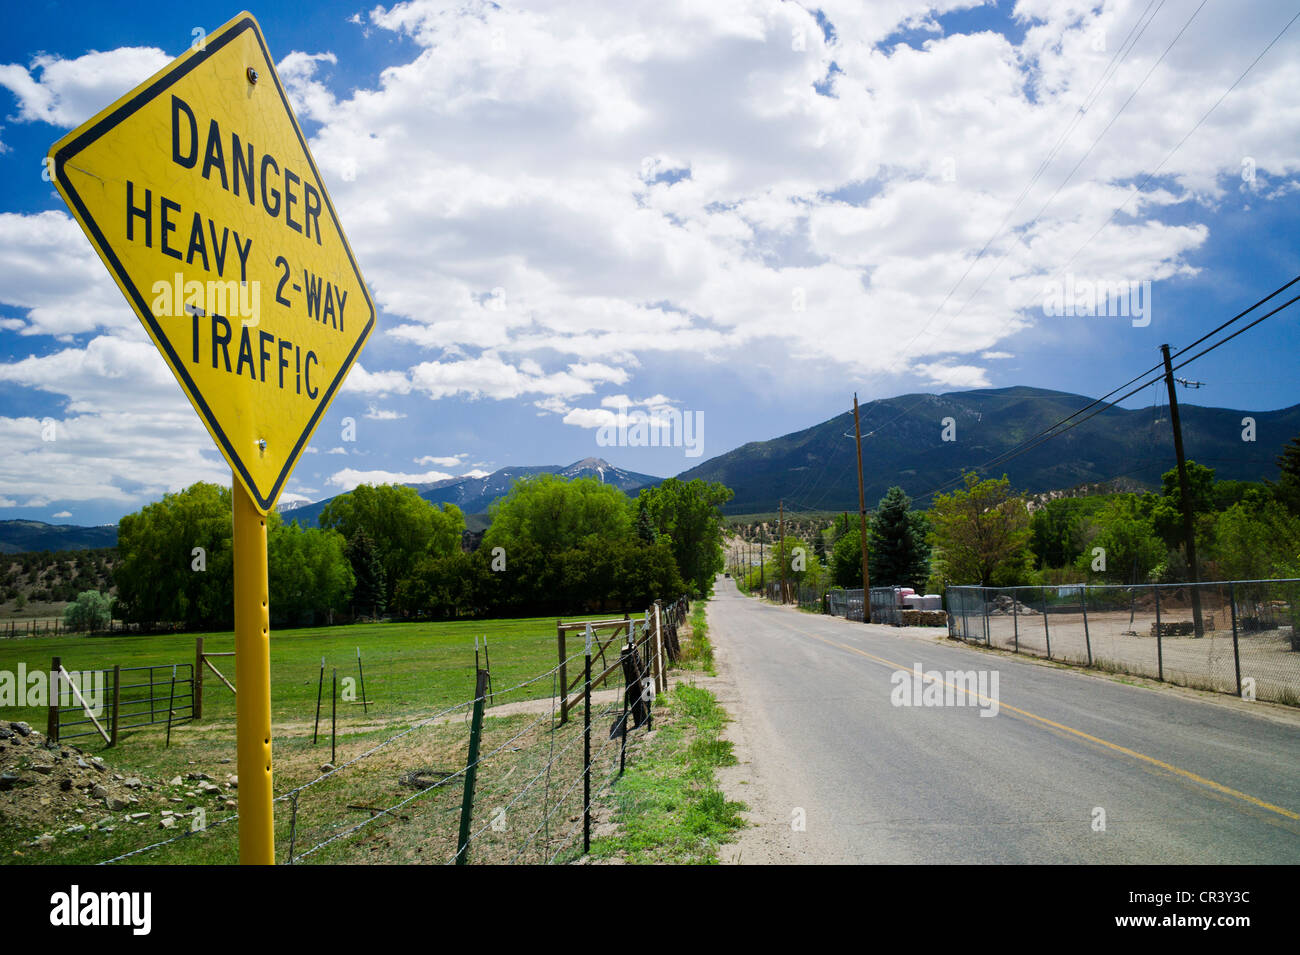 Humorous sign reads 'Danger, Heavy 2-Way Traffic', on rural County Rd 107 near Sallida, Colorado, USA - Stock Image